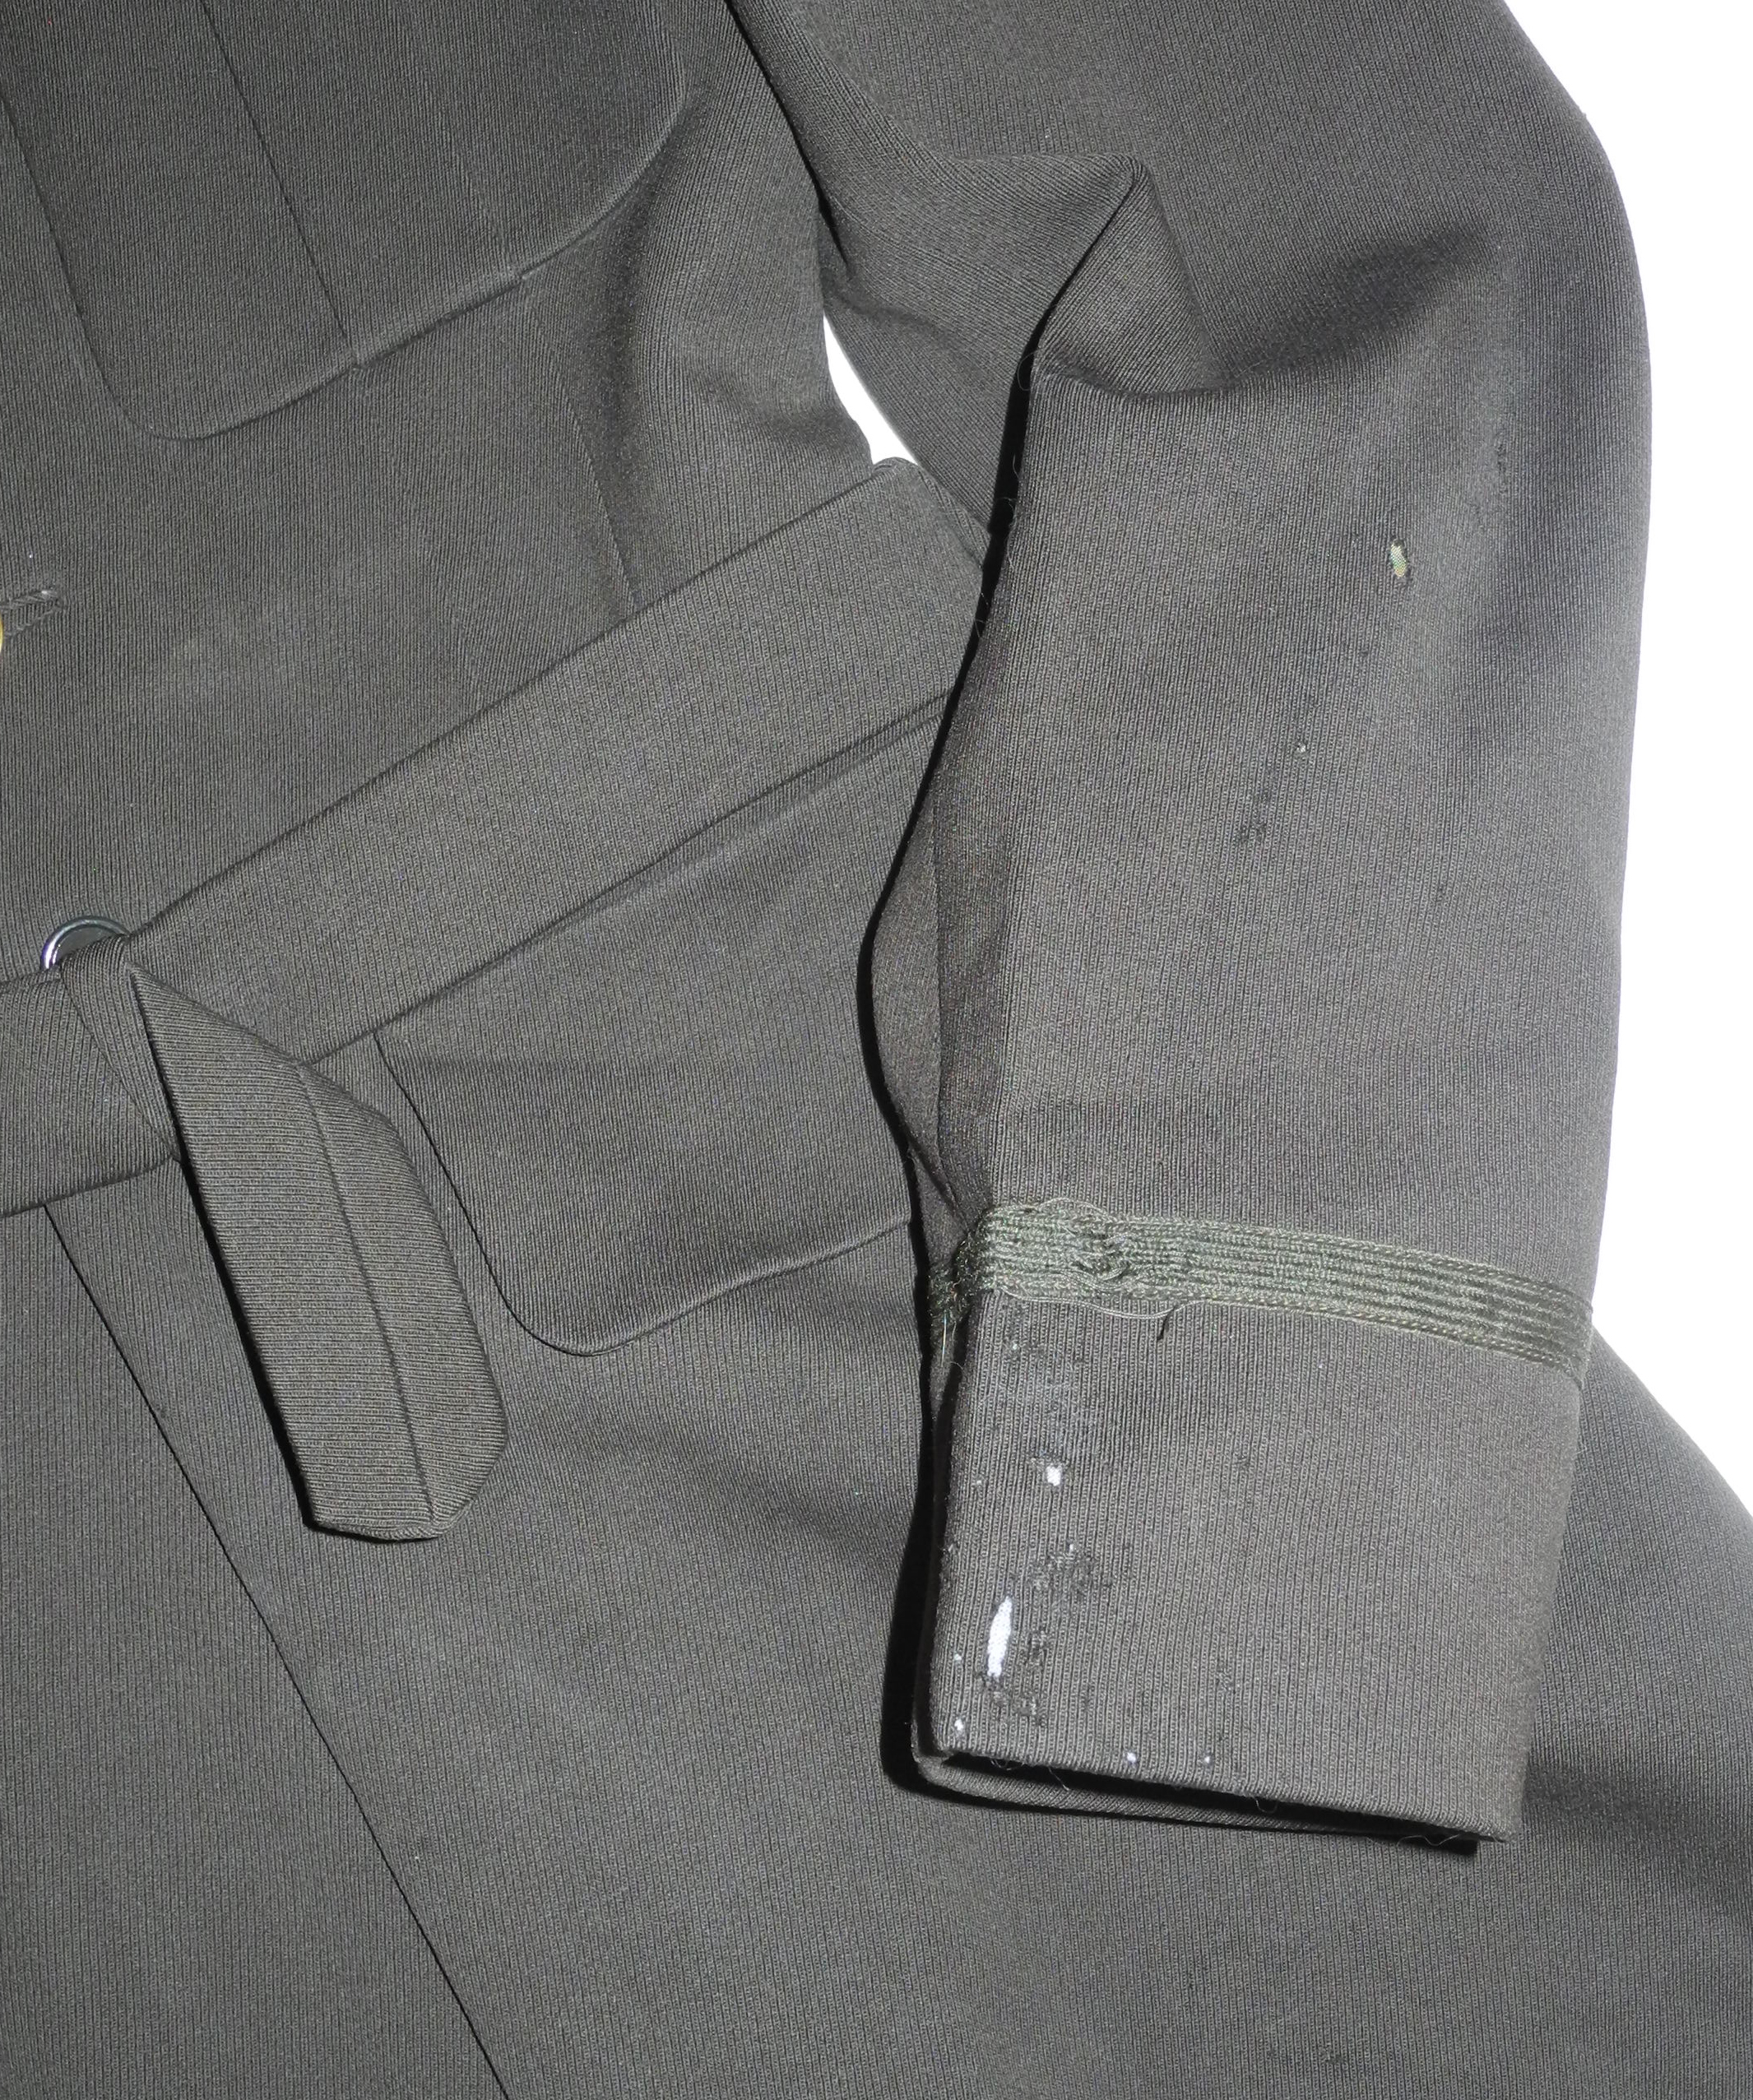 AAF Glider Pilot / Troop Carrier 4-pocket tunic